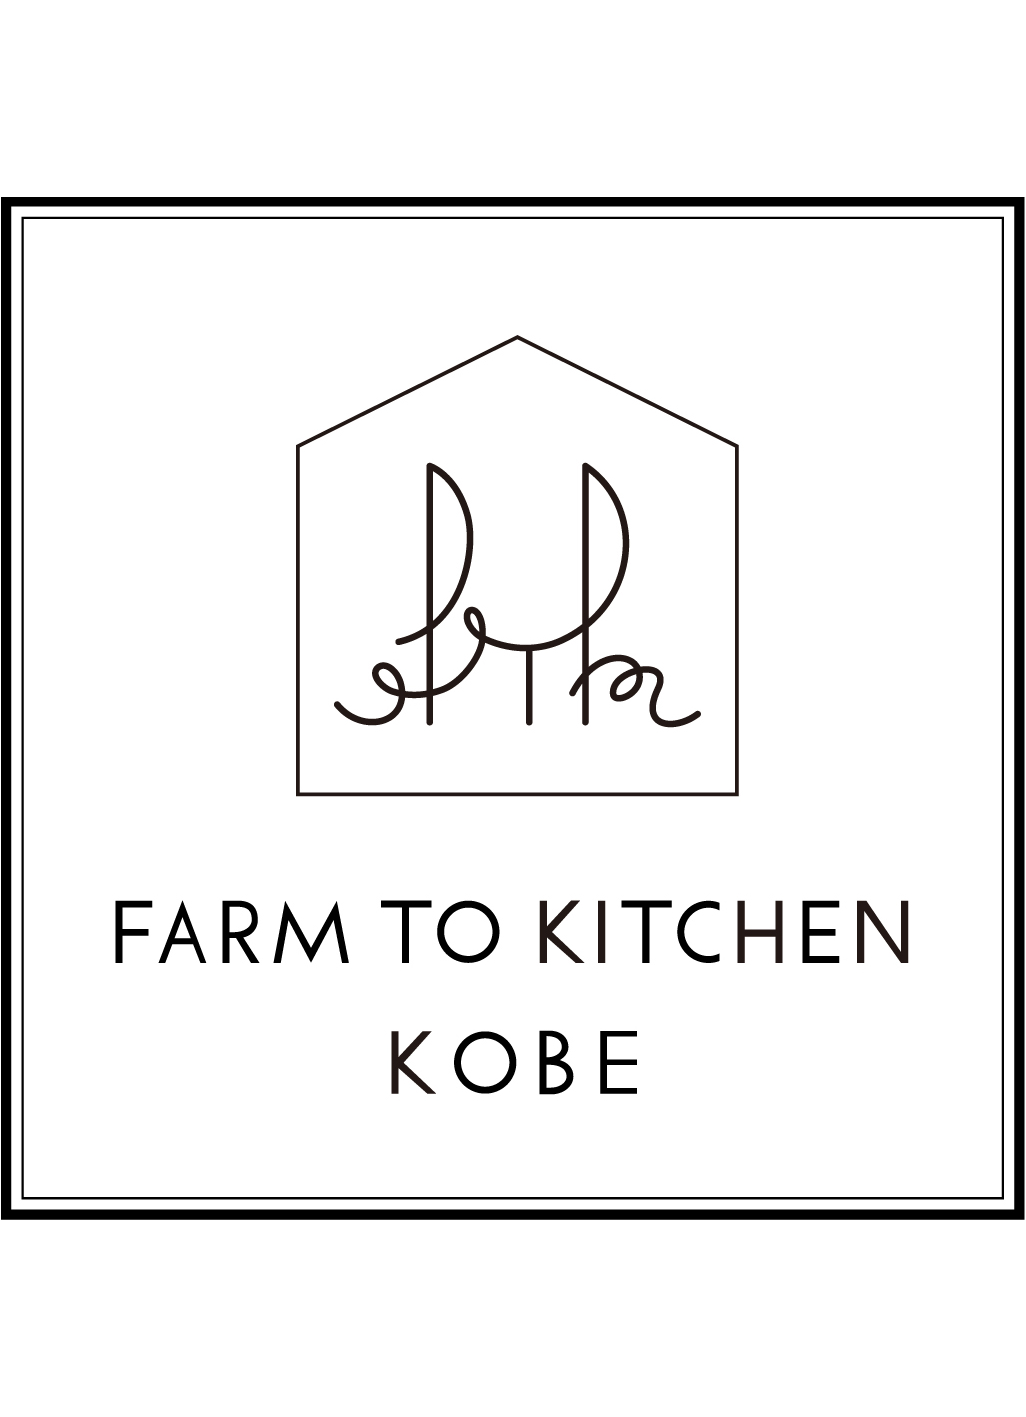 FARM TO KITCHEN